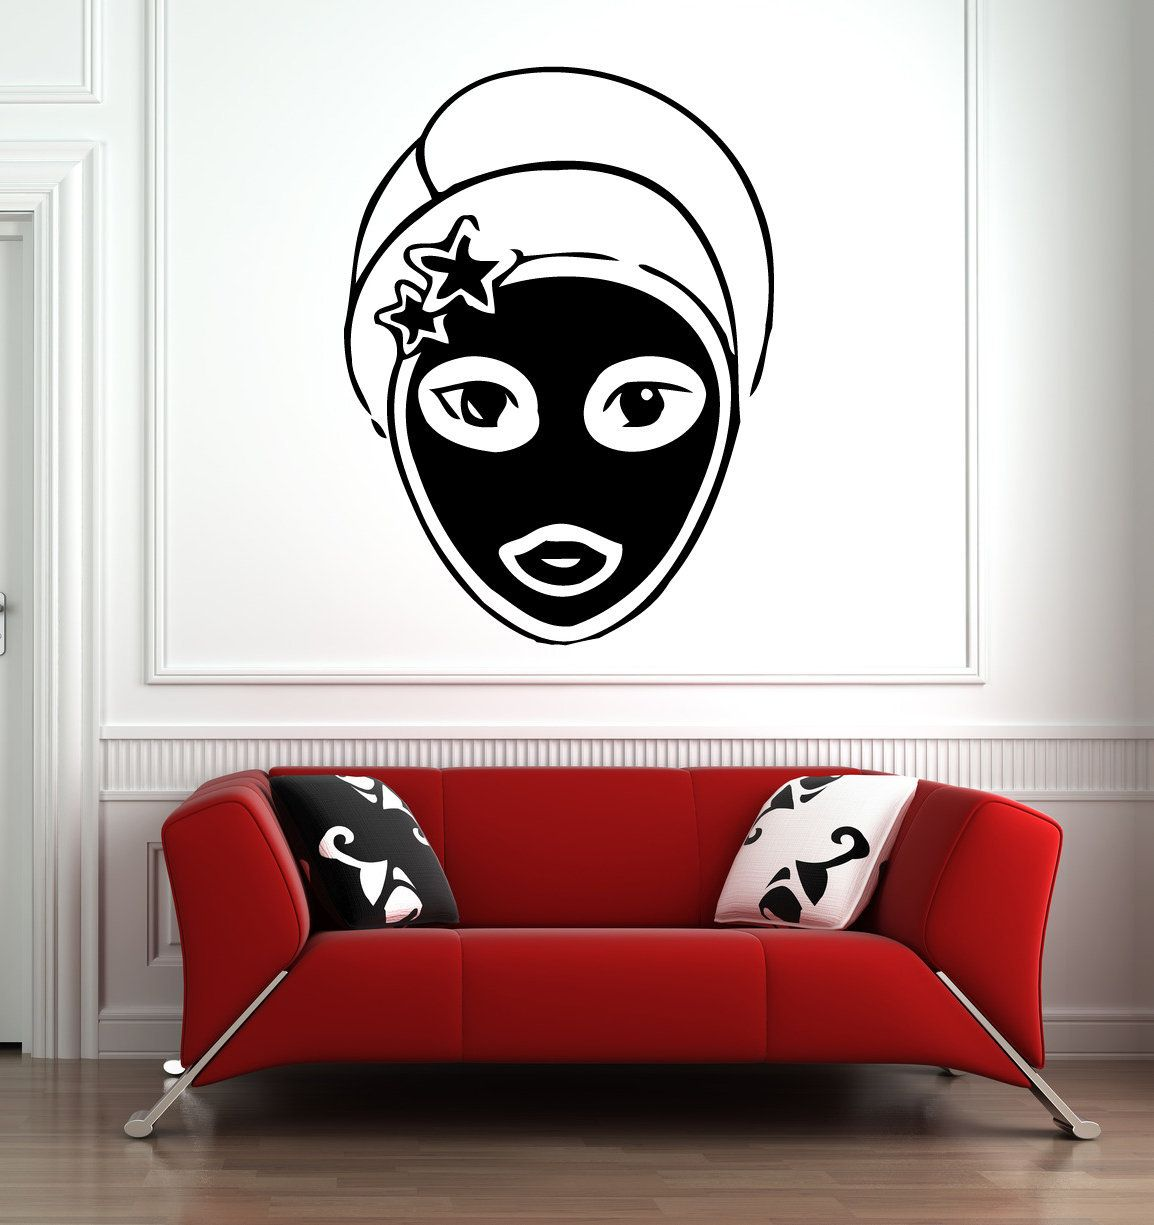 Womans face as wall art decal, woman face wall graphics.